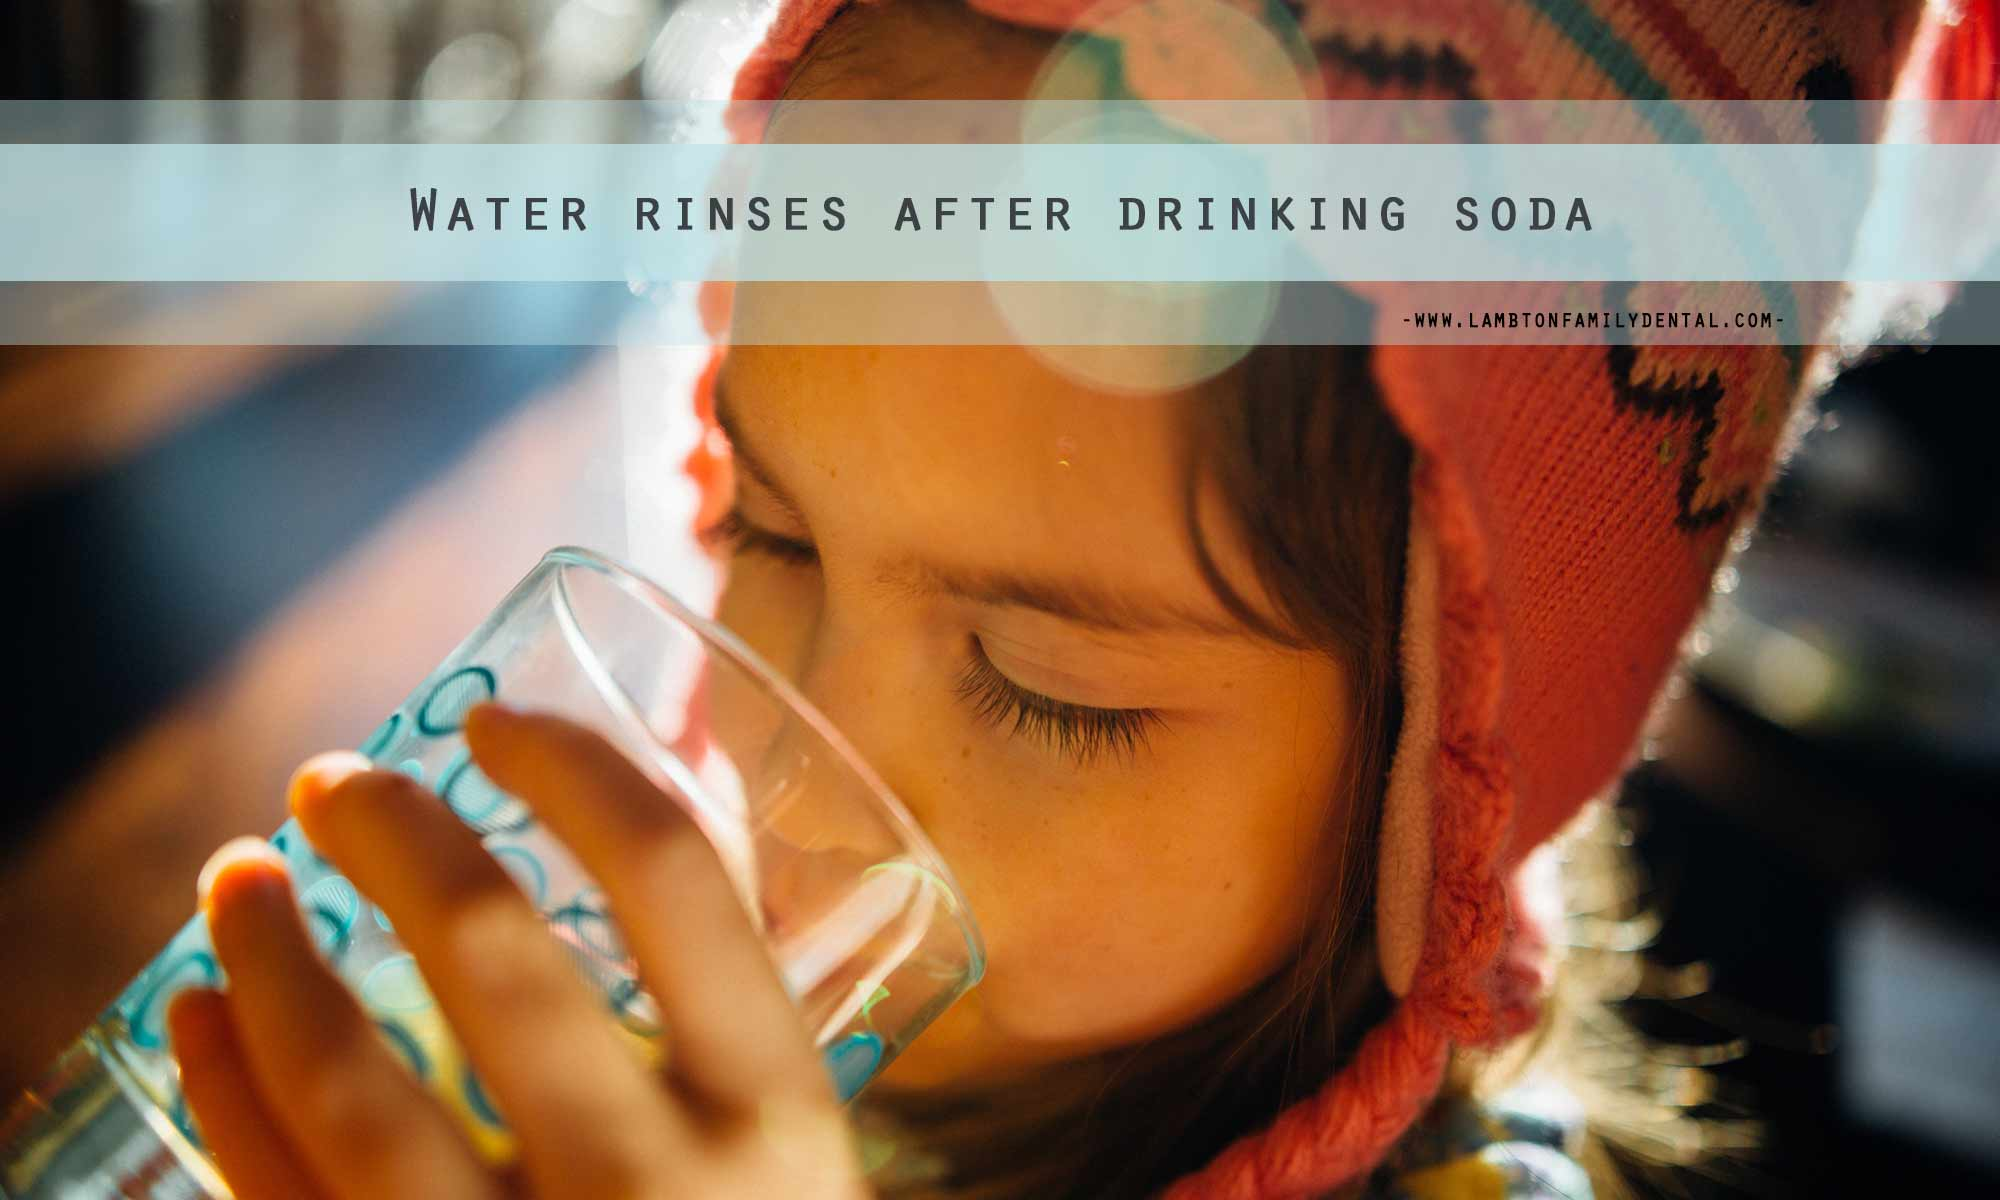 Water rinses after drinking soda